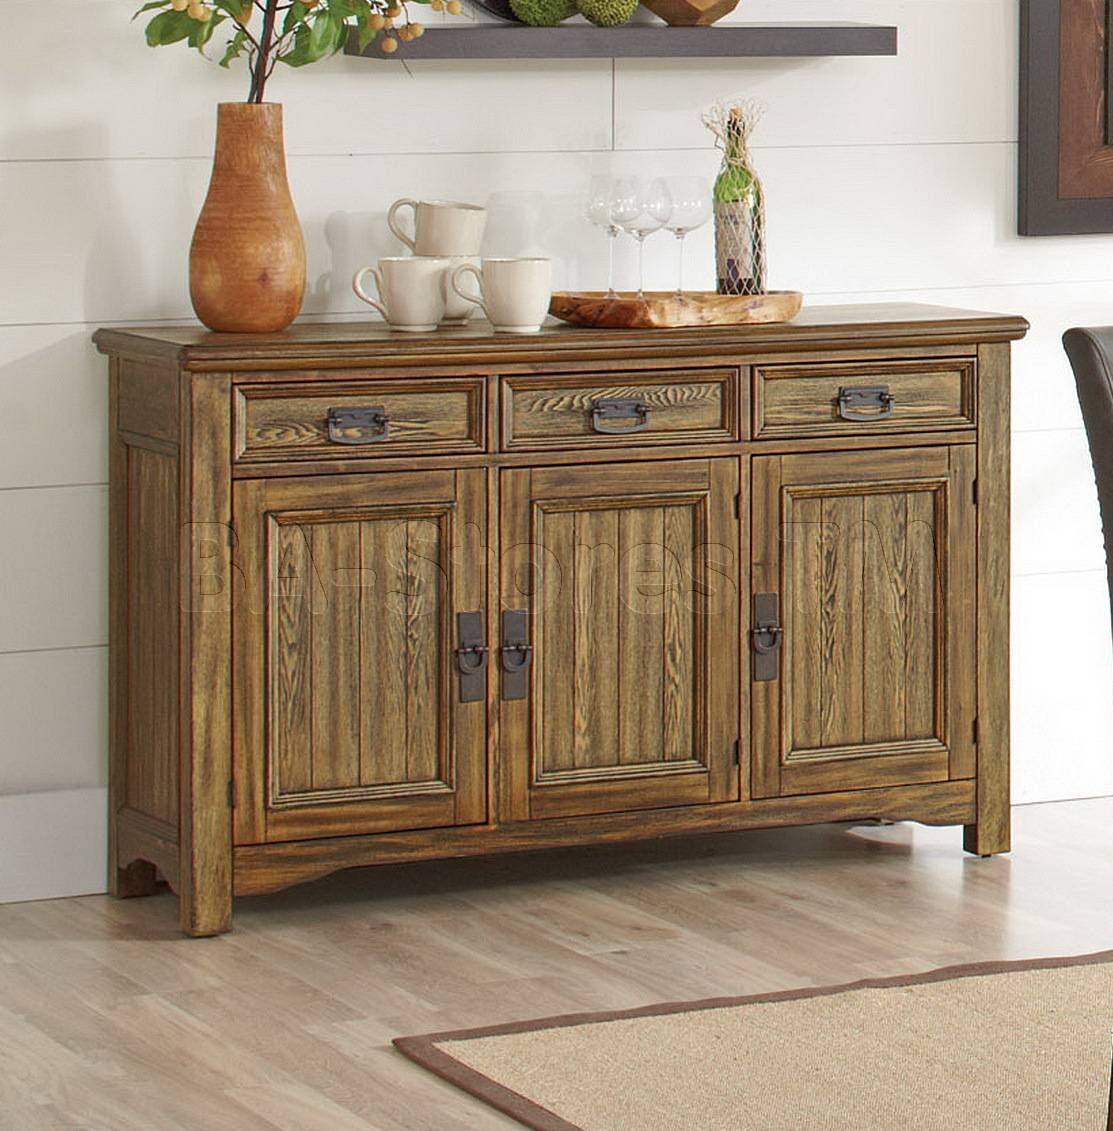 Kitchen Cabinet : Narrow Buffet Table 42 Inch Sideboard Modern Regarding Best And Newest 42 Inch Sideboards (#7 of 15)